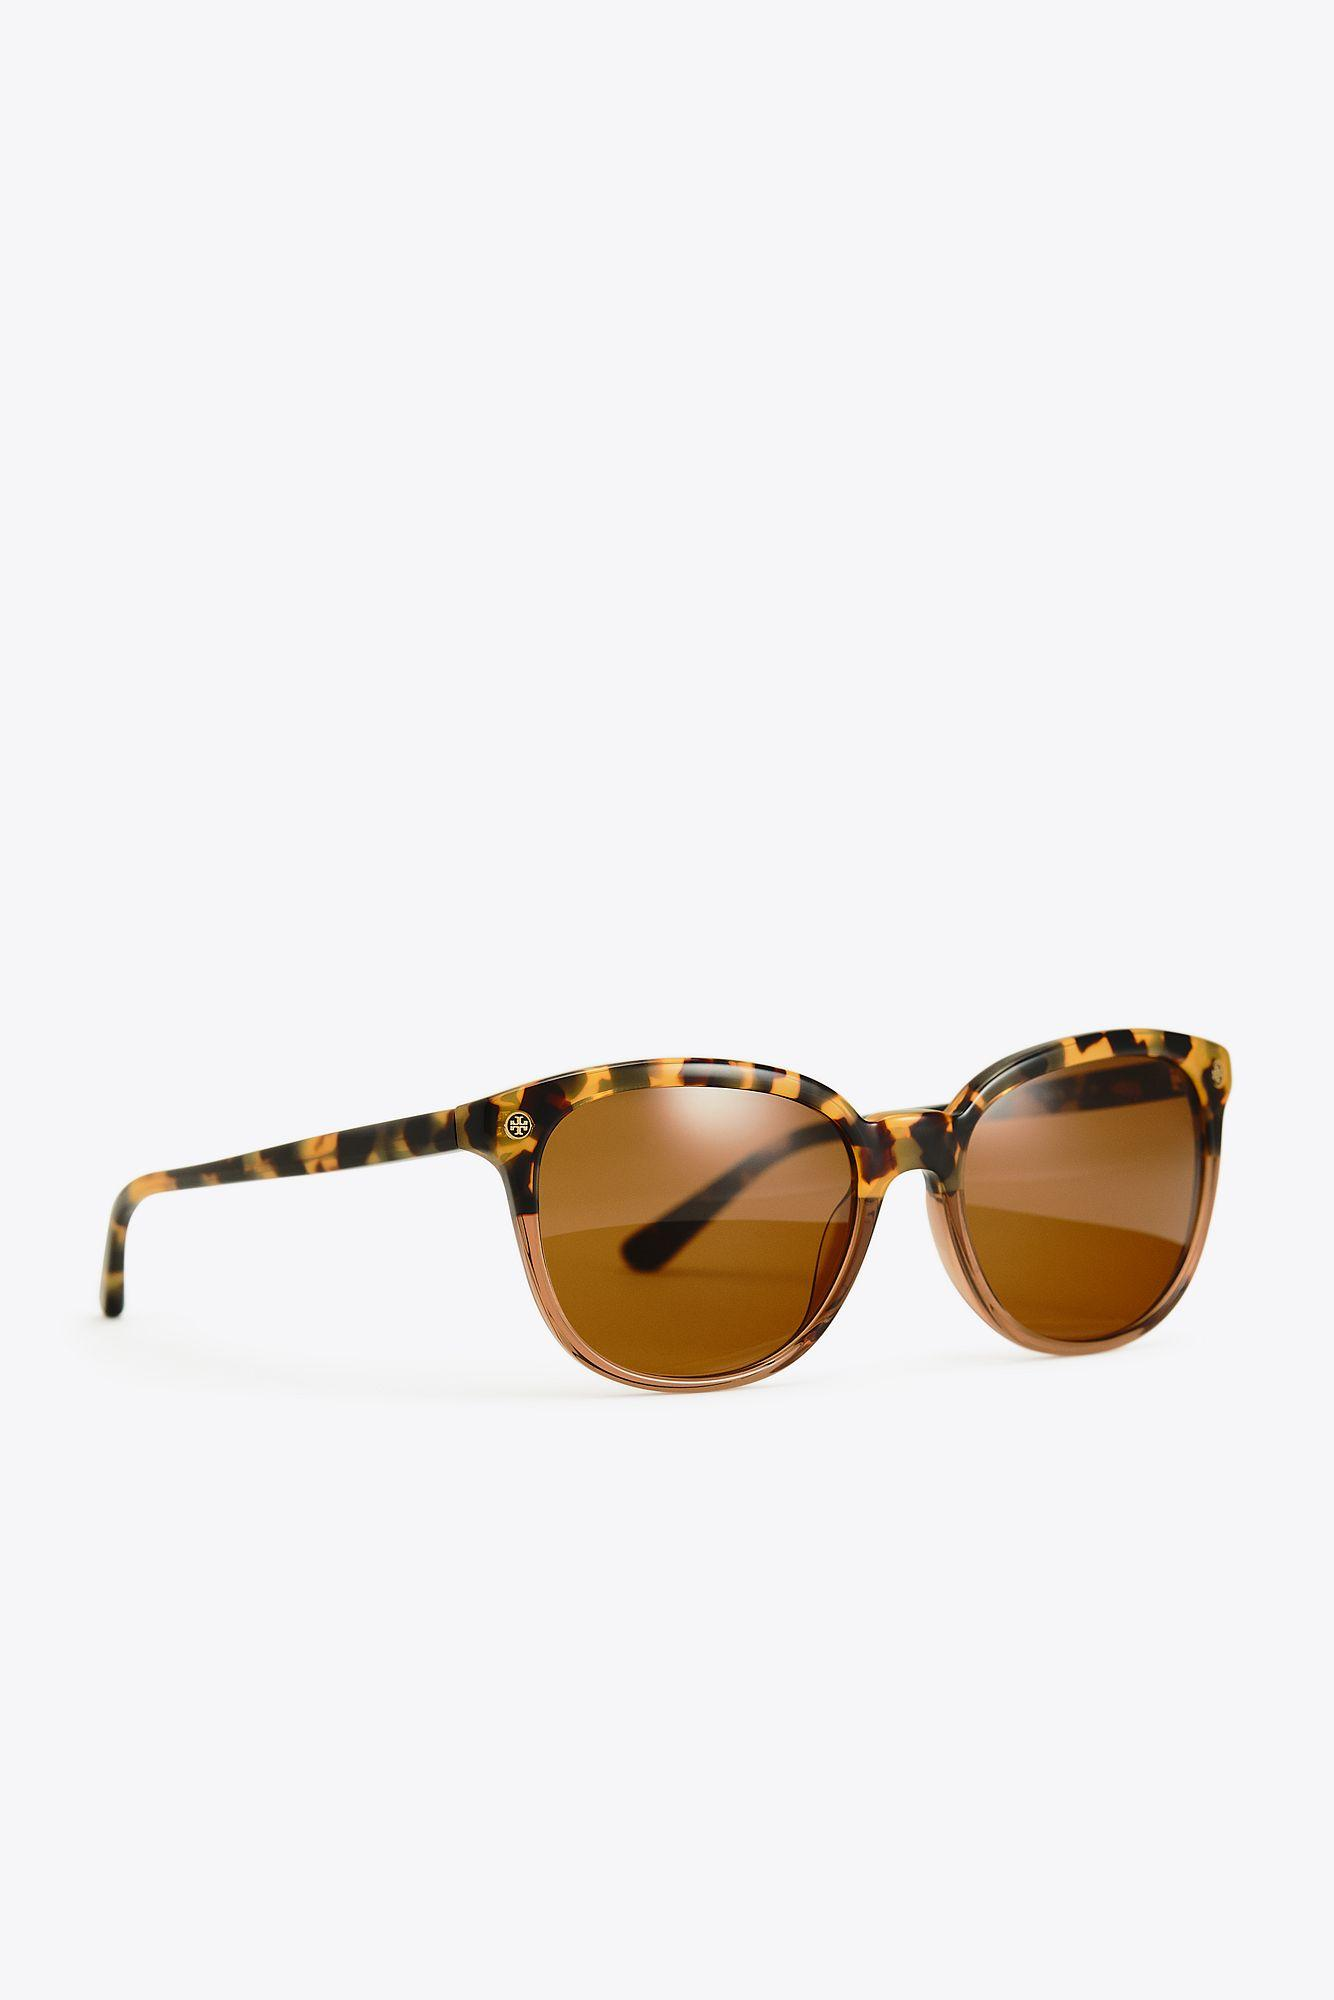 9086faf14bea Lyst - Tory Burch Vintage Petite Square | 001 | Sunglasses in Brown